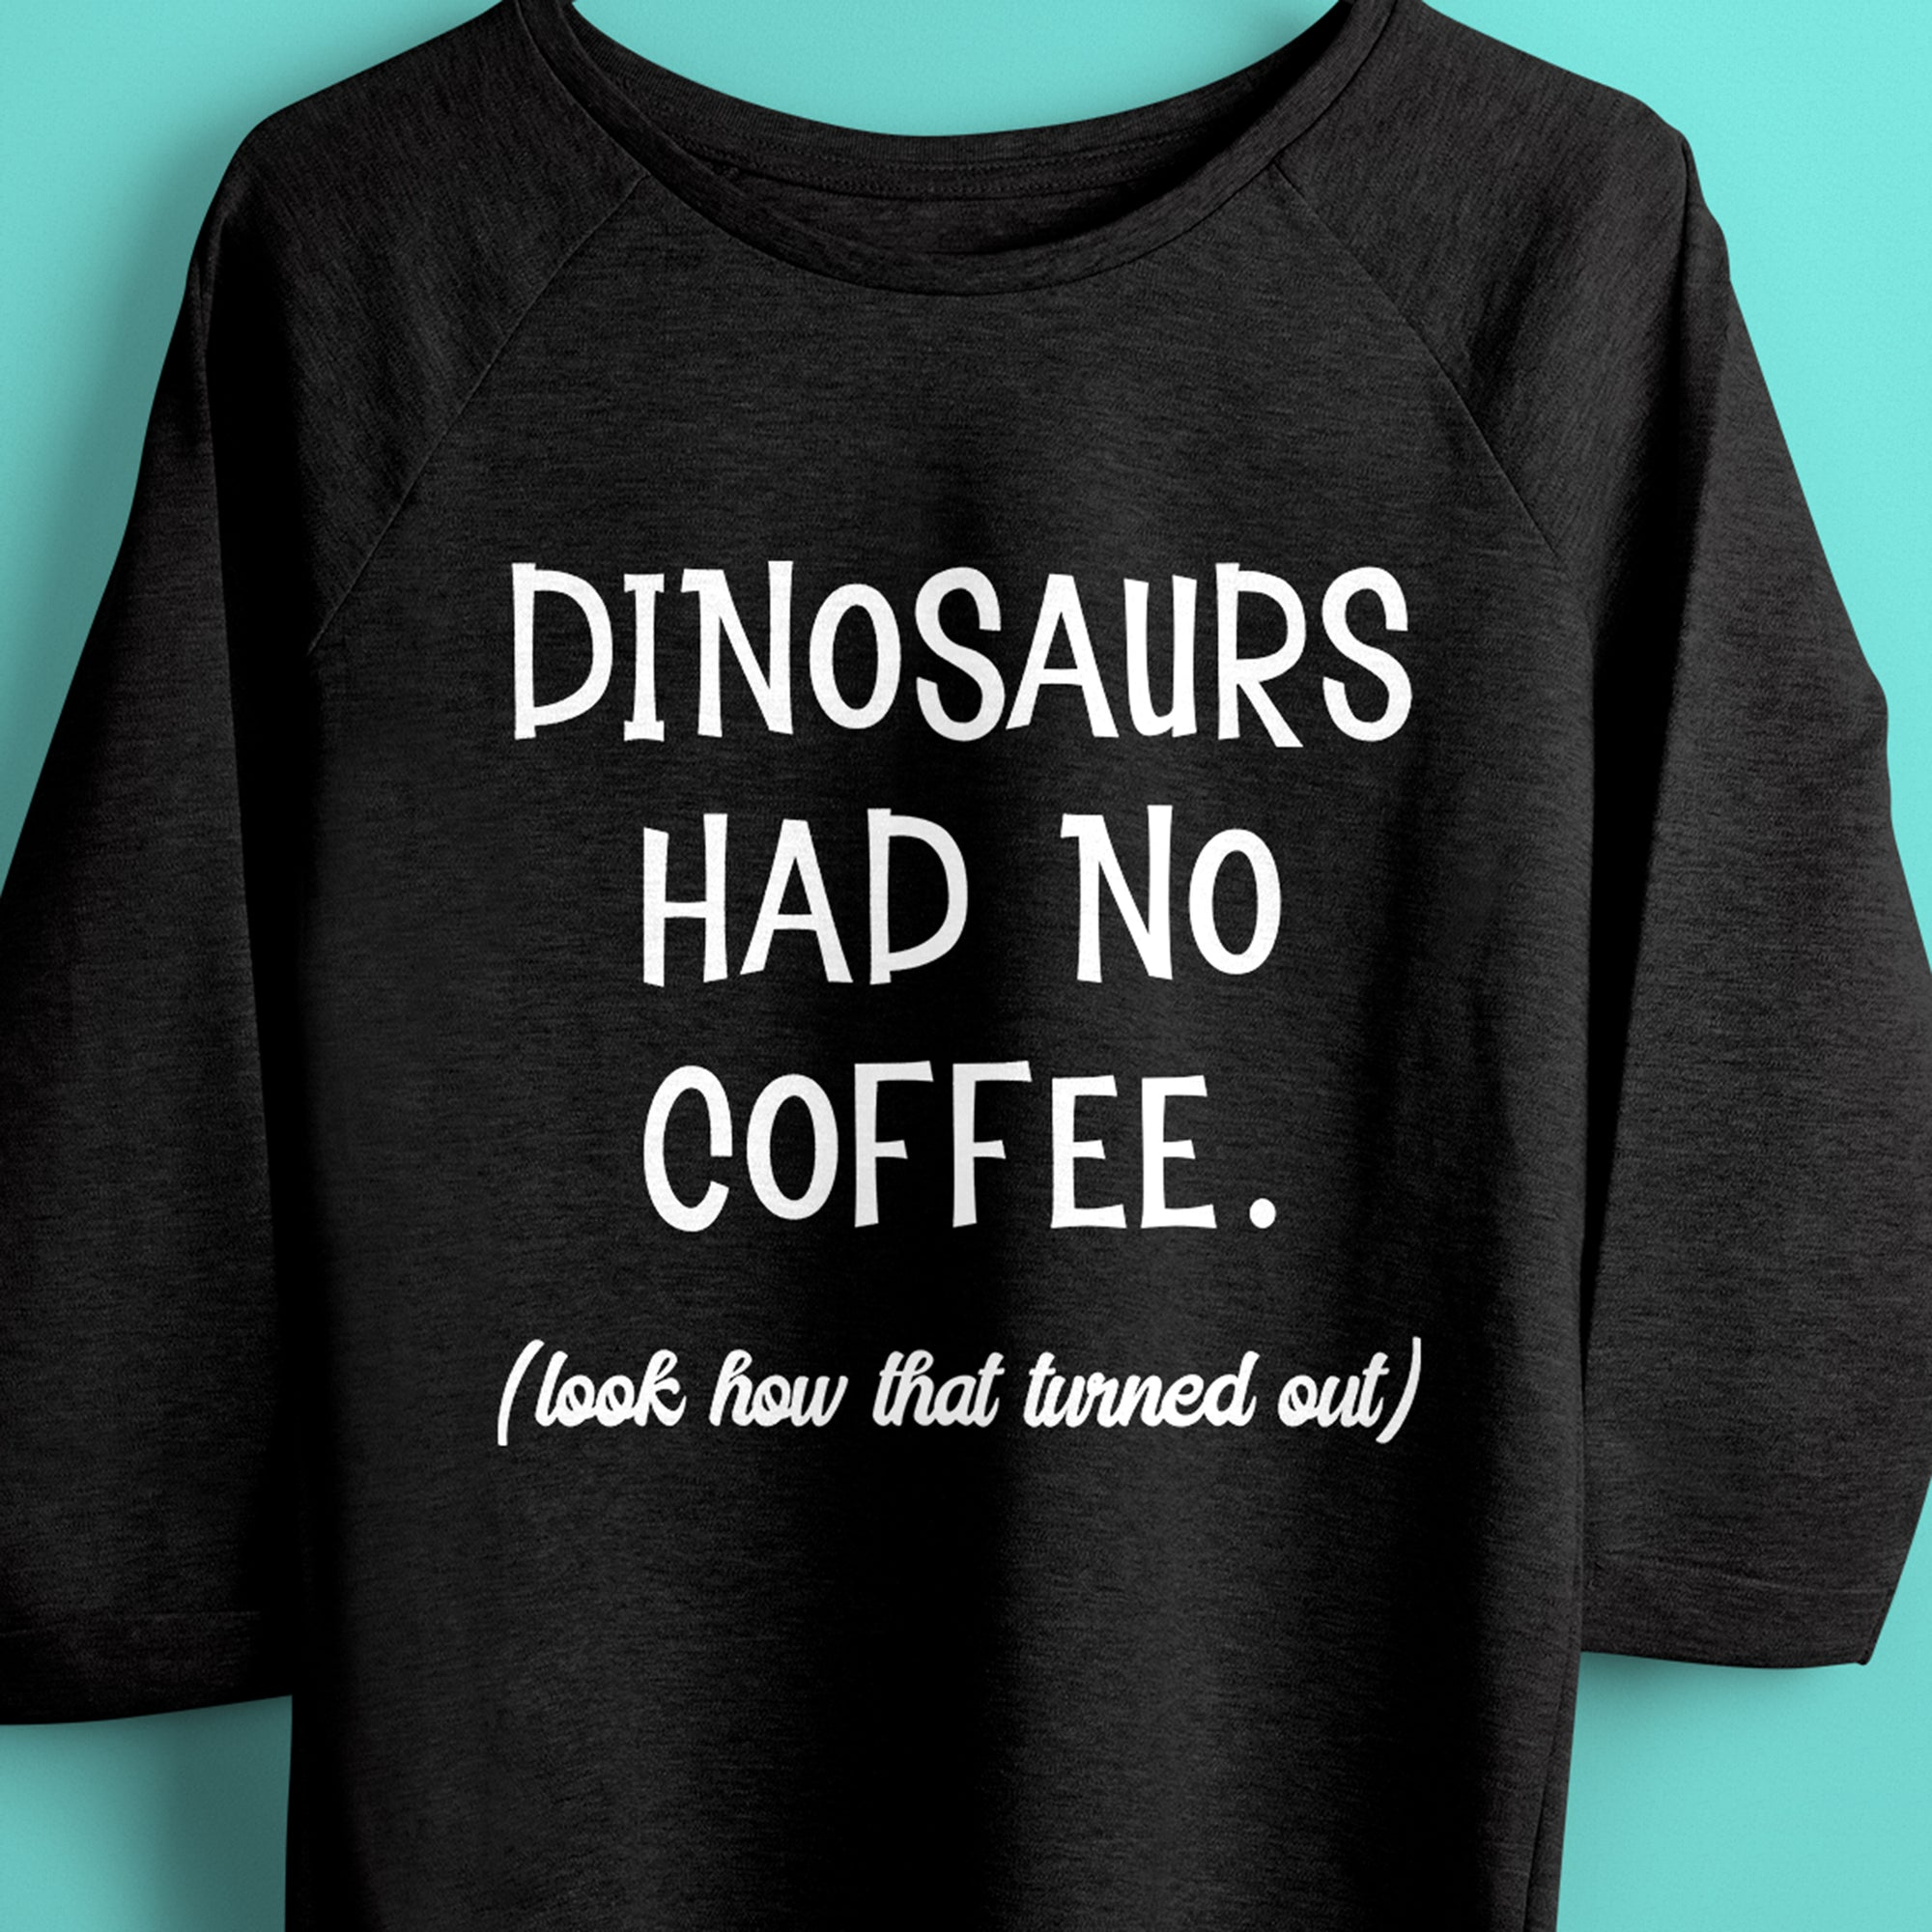 Coffee SVG File, Dinosaurs Had No Coffee SVG, Funny Coffee Saying SVG, Coffee Mug SVG, Coffee Cup SVG Cut File